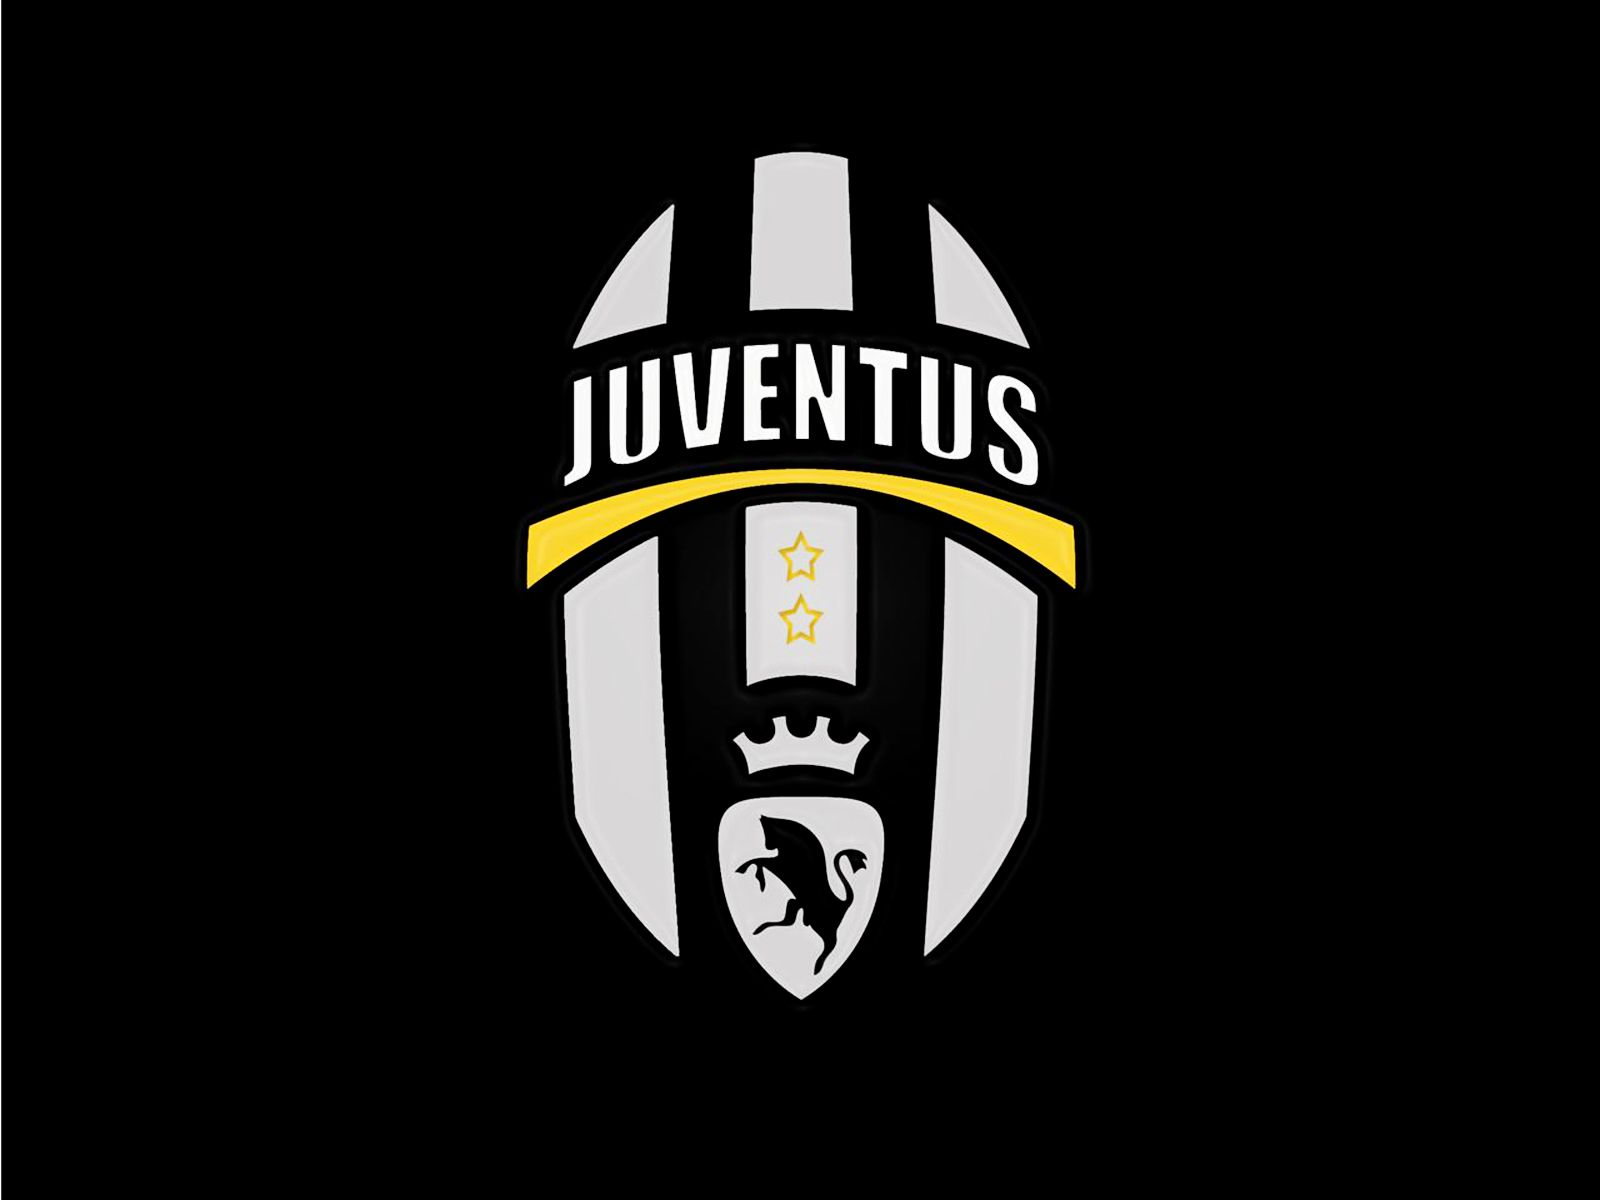 juventus fc wallpaper and background image 1600x1200